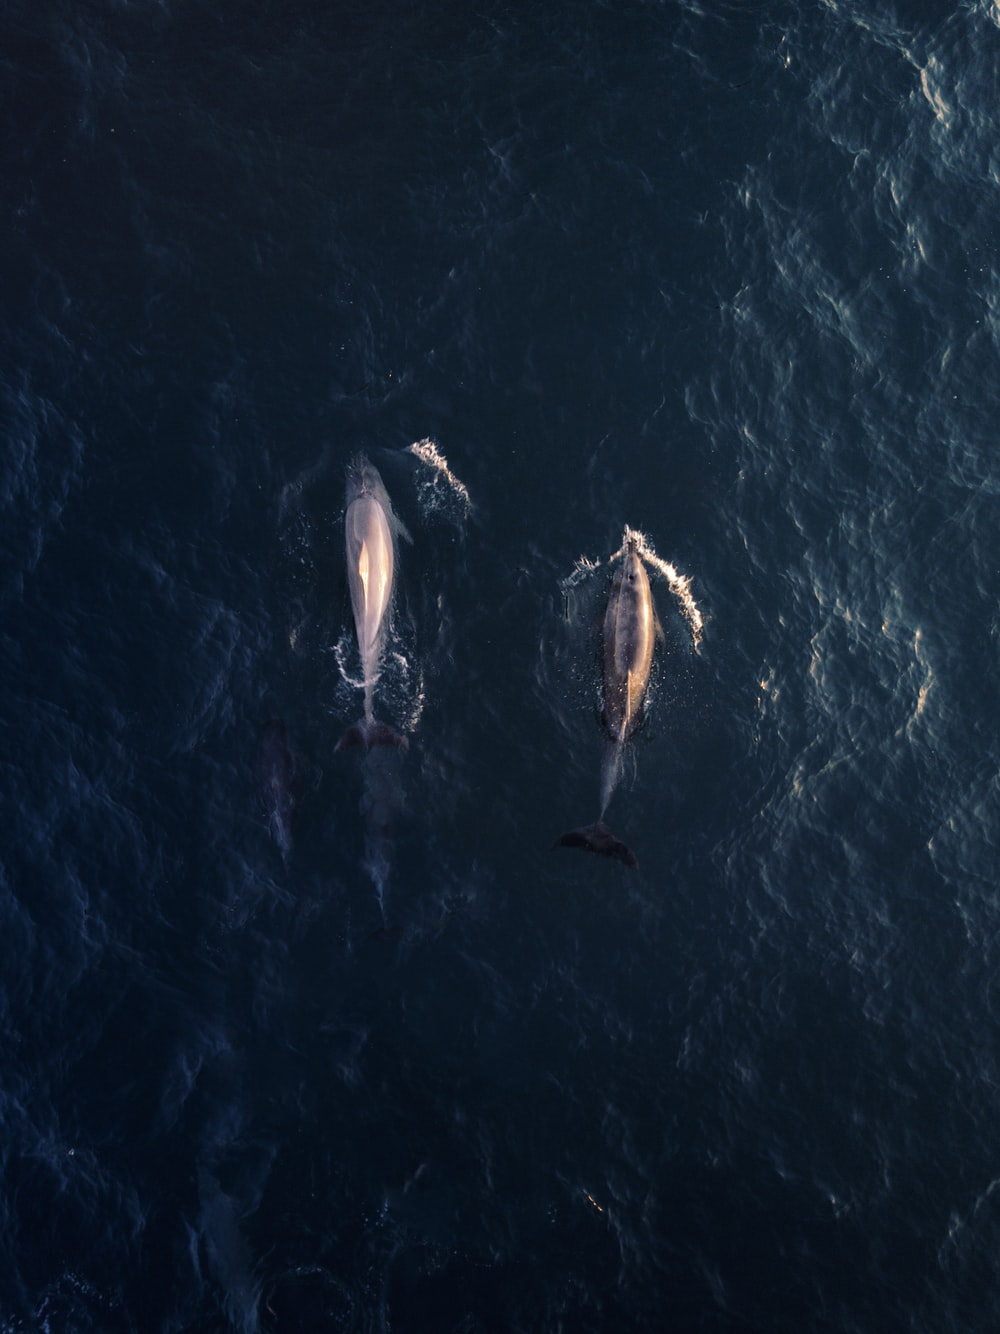 aerial view photography of two dolphins in water